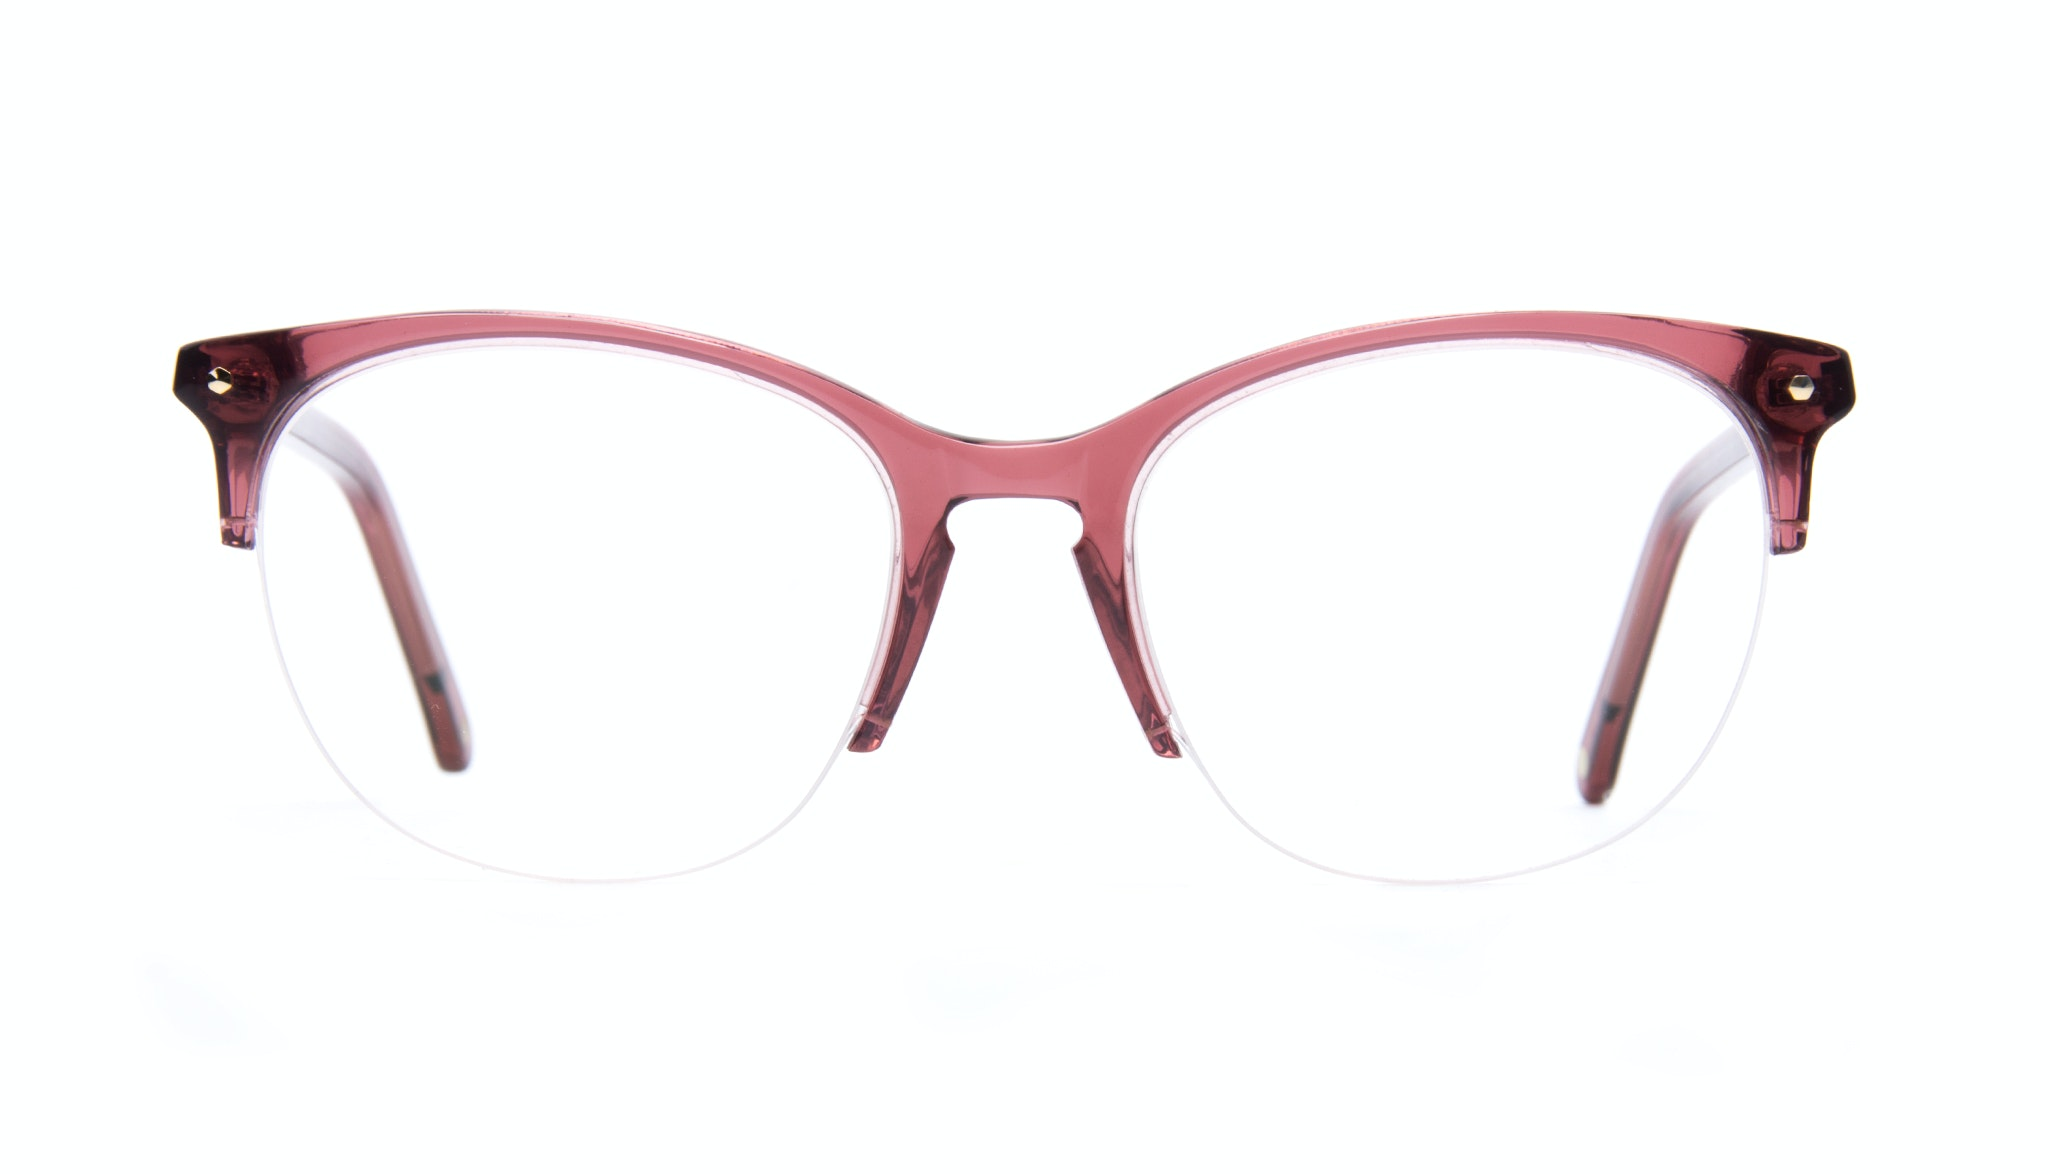 Affordable Fashion Glasses Rectangle Round Semi-Rimless Eyeglasses Women Nadine Light Winegum Front